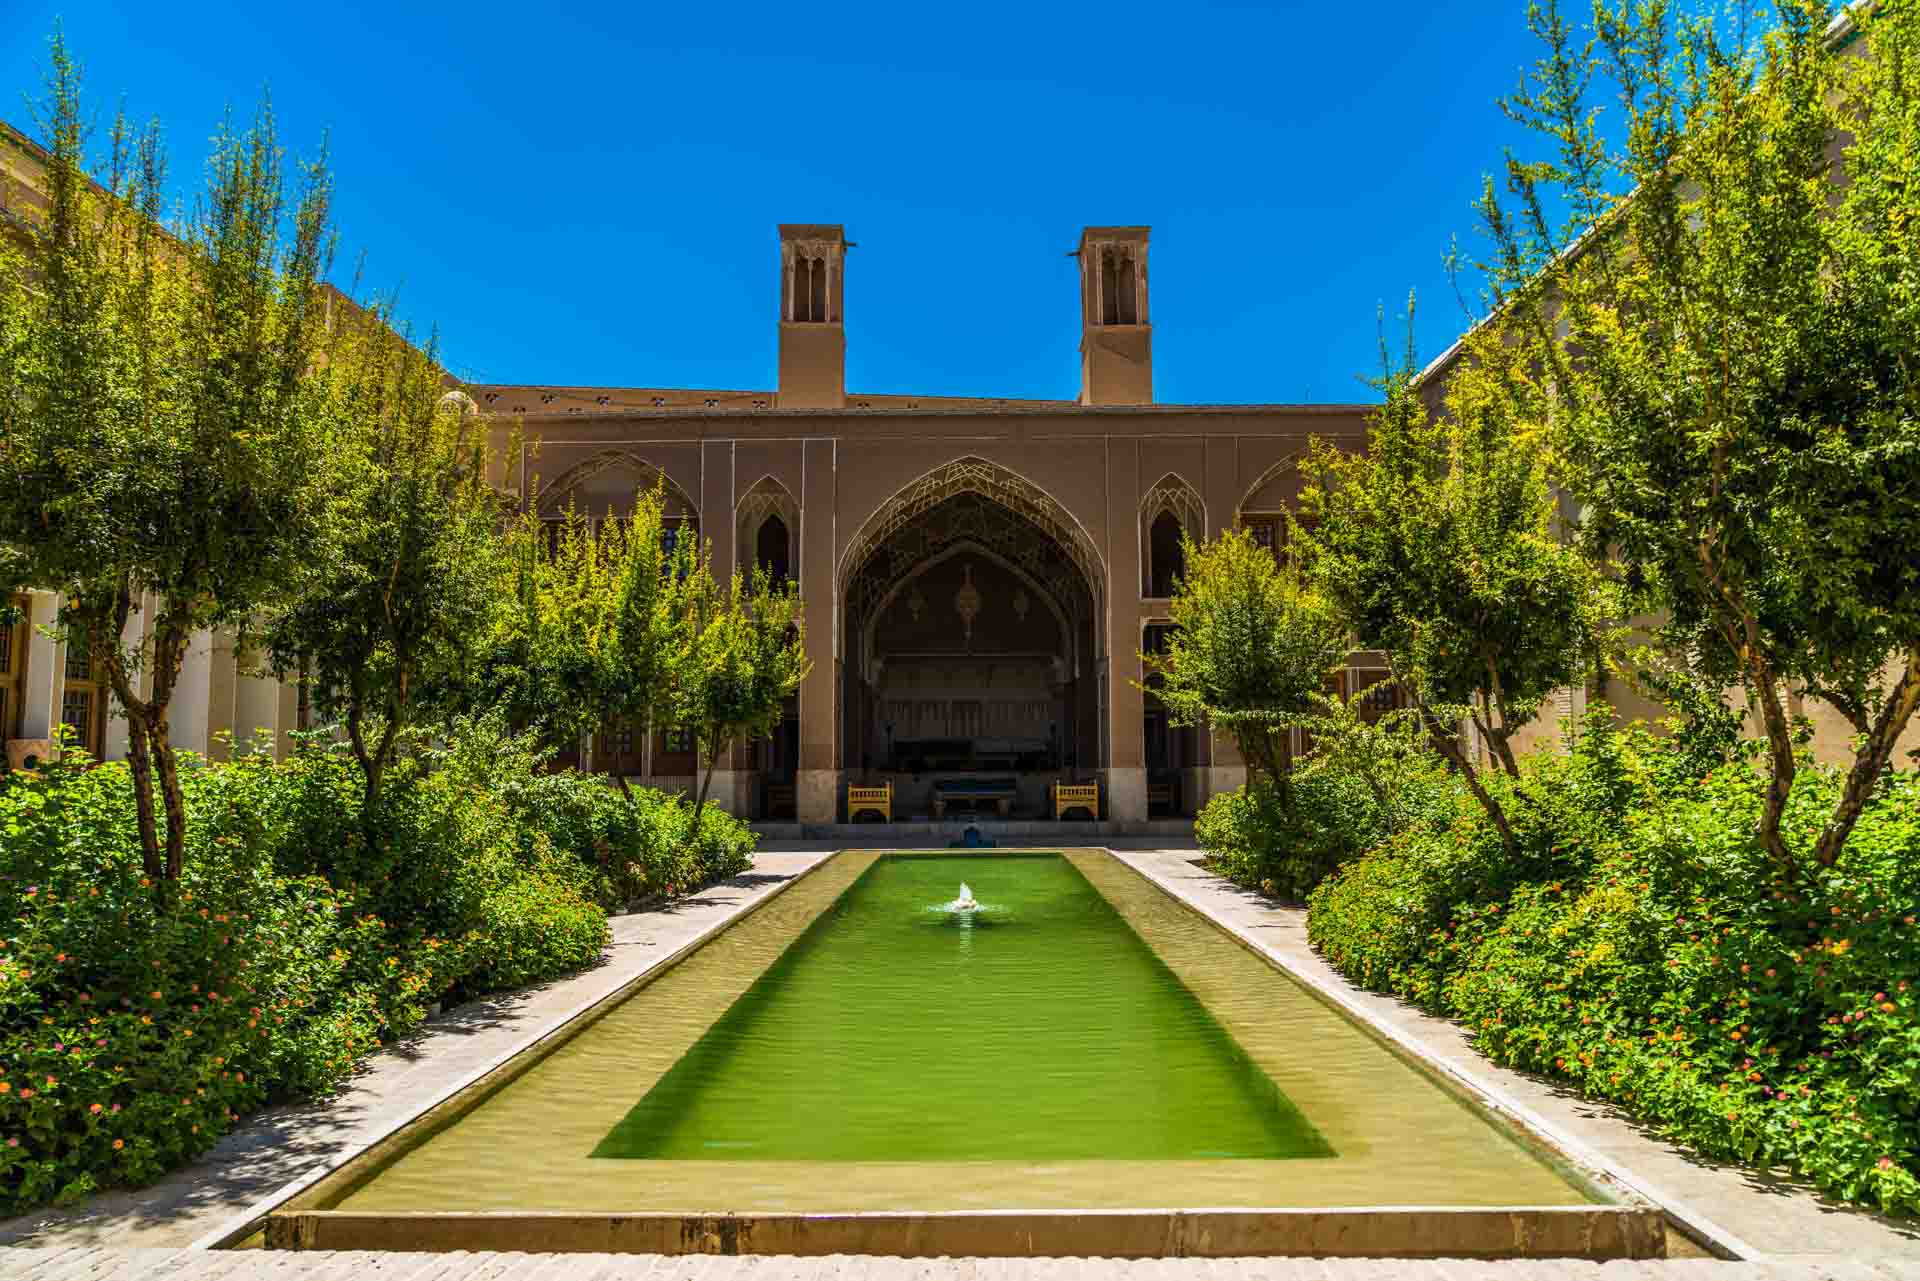 Saraye Ameriha Boutique Hotel courtyard, kashan, iran, pescart, photo blog, travel blog, blog, photo travel blog, enrico pescantini, pescantini